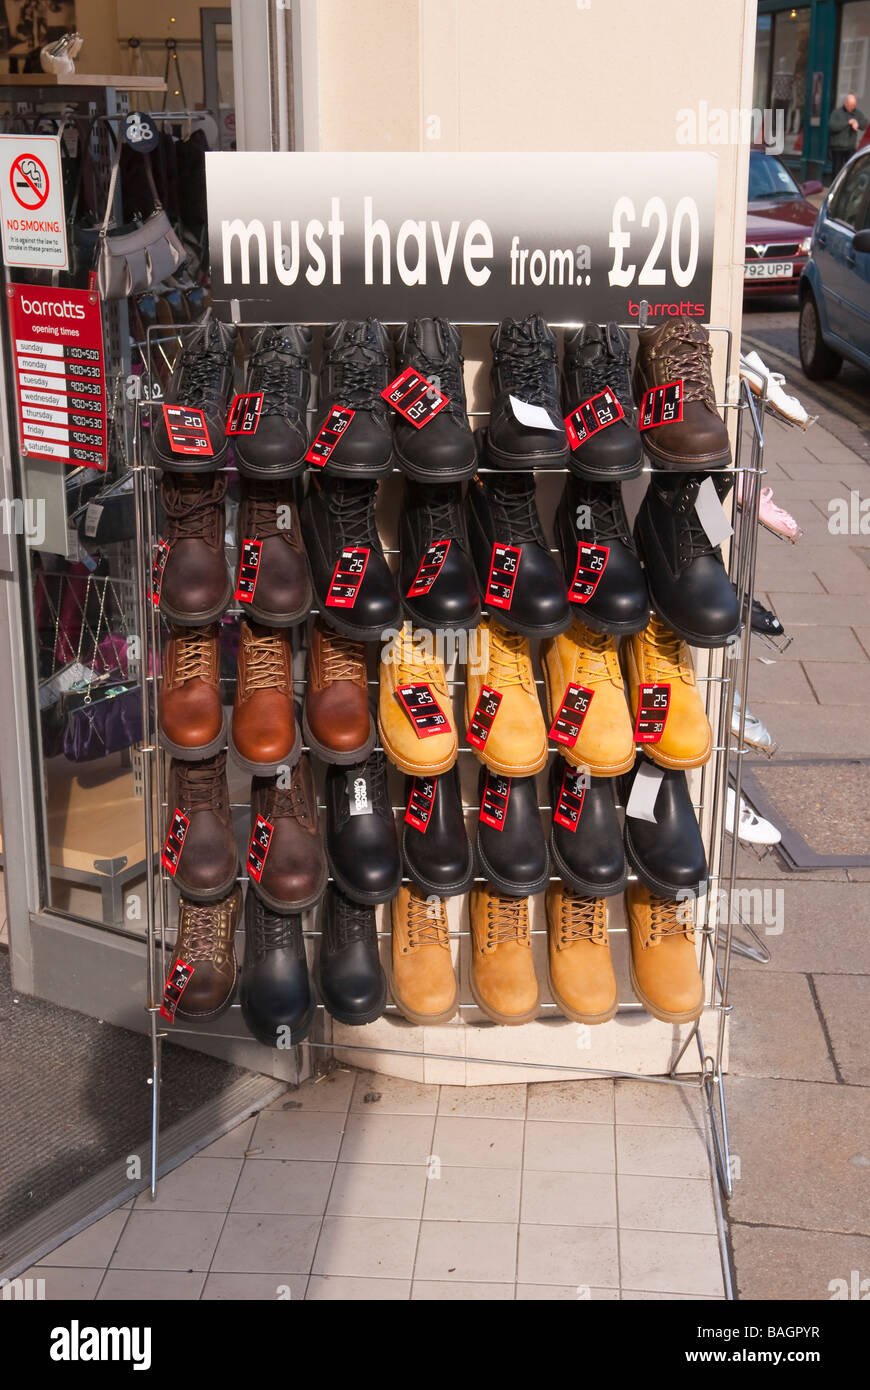 73f711569ba Mens shoes for sale on a rack outside Barratts shoe shop store in  York